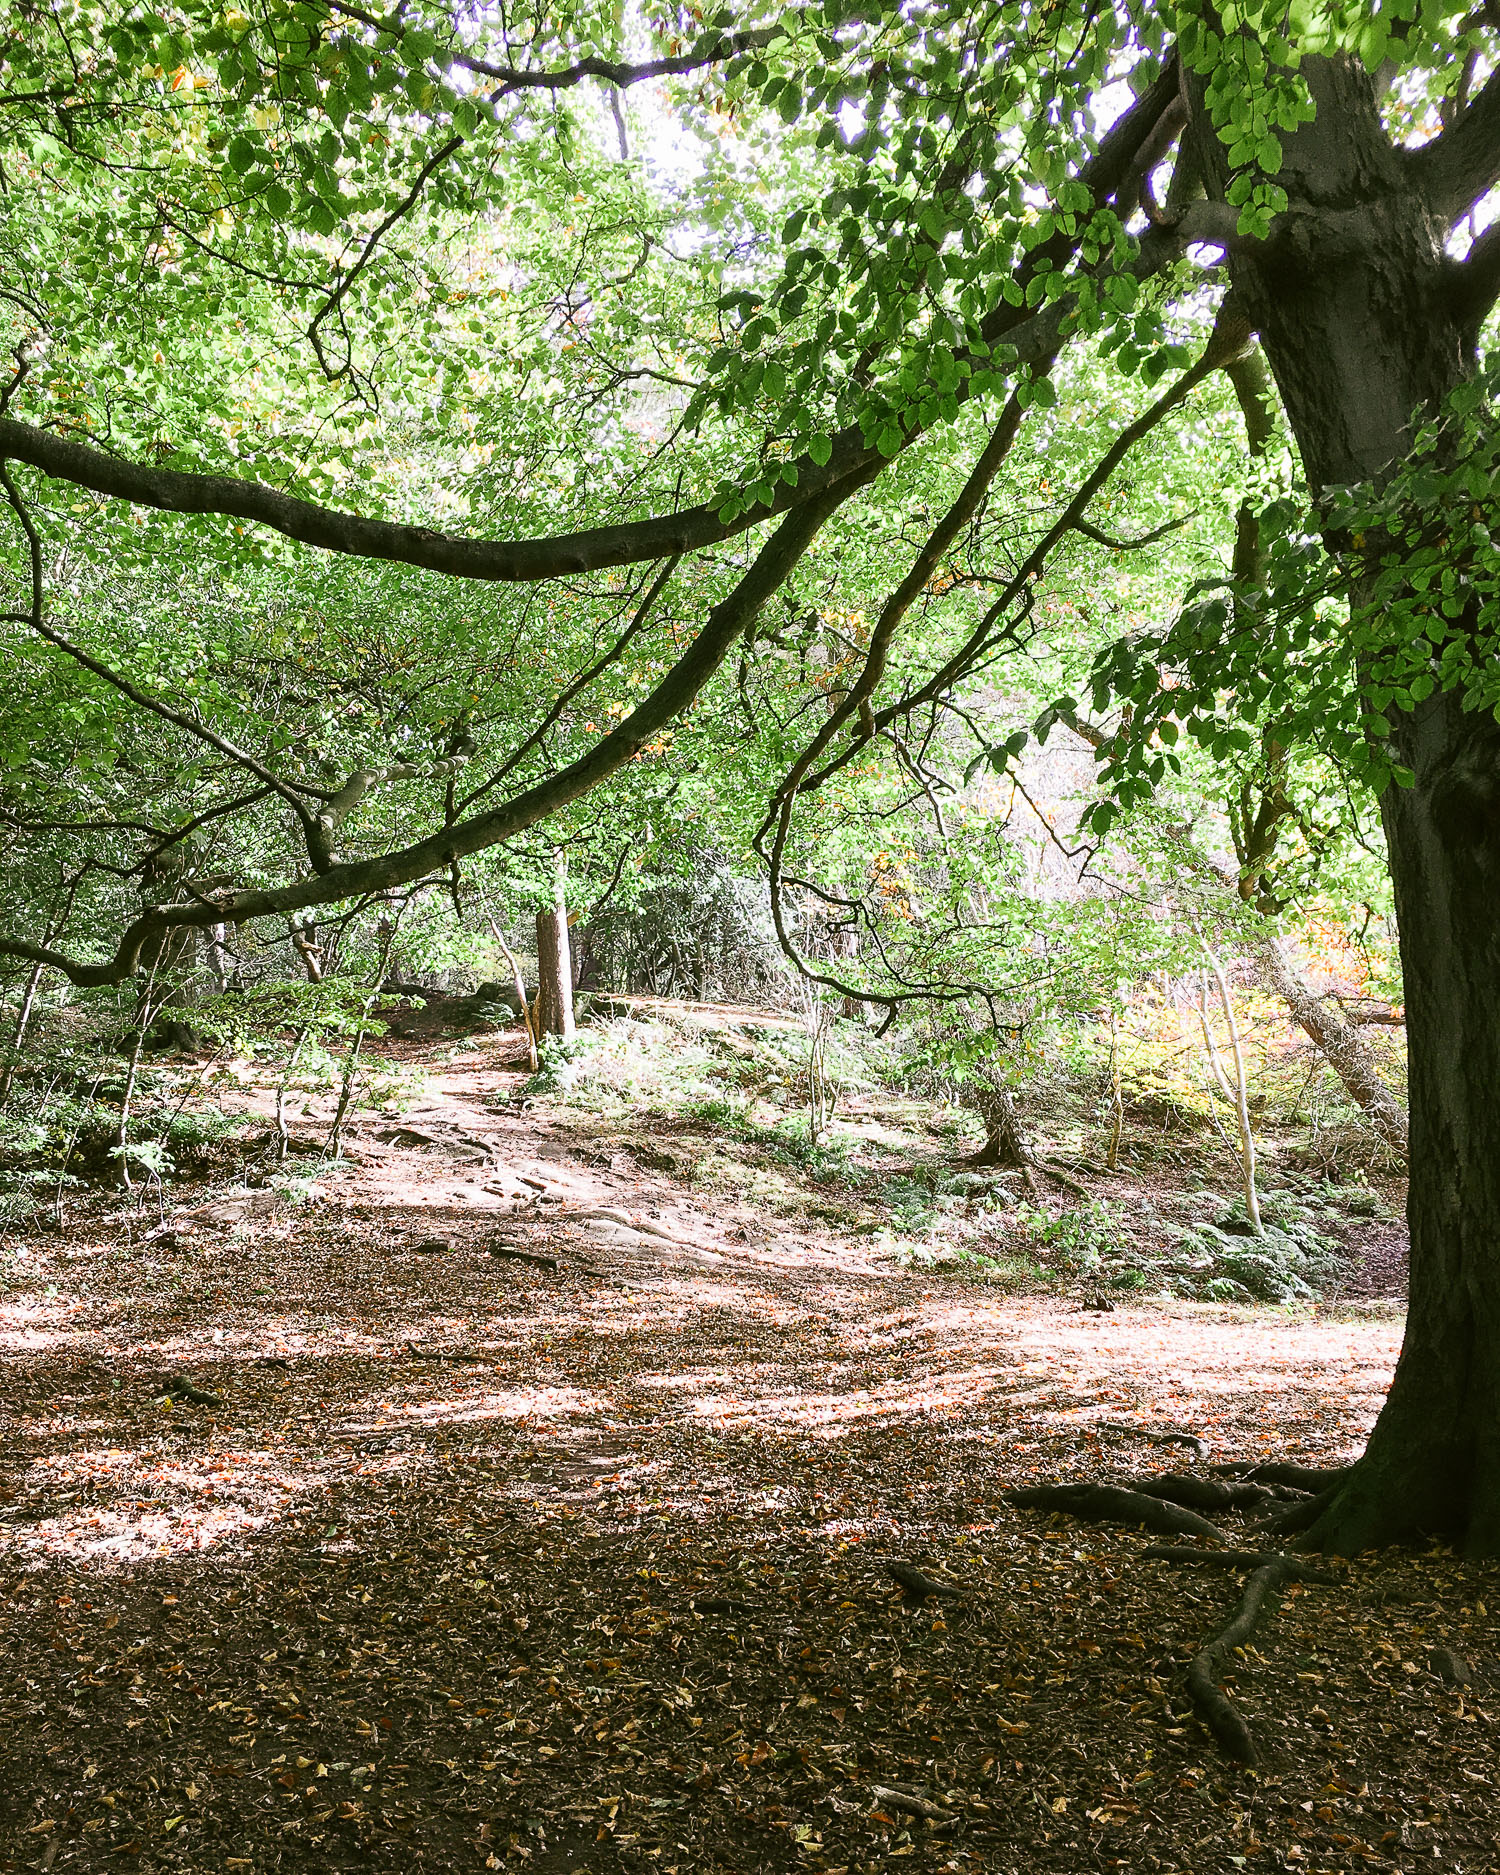 The forest at Costorphine Hill nature reserve